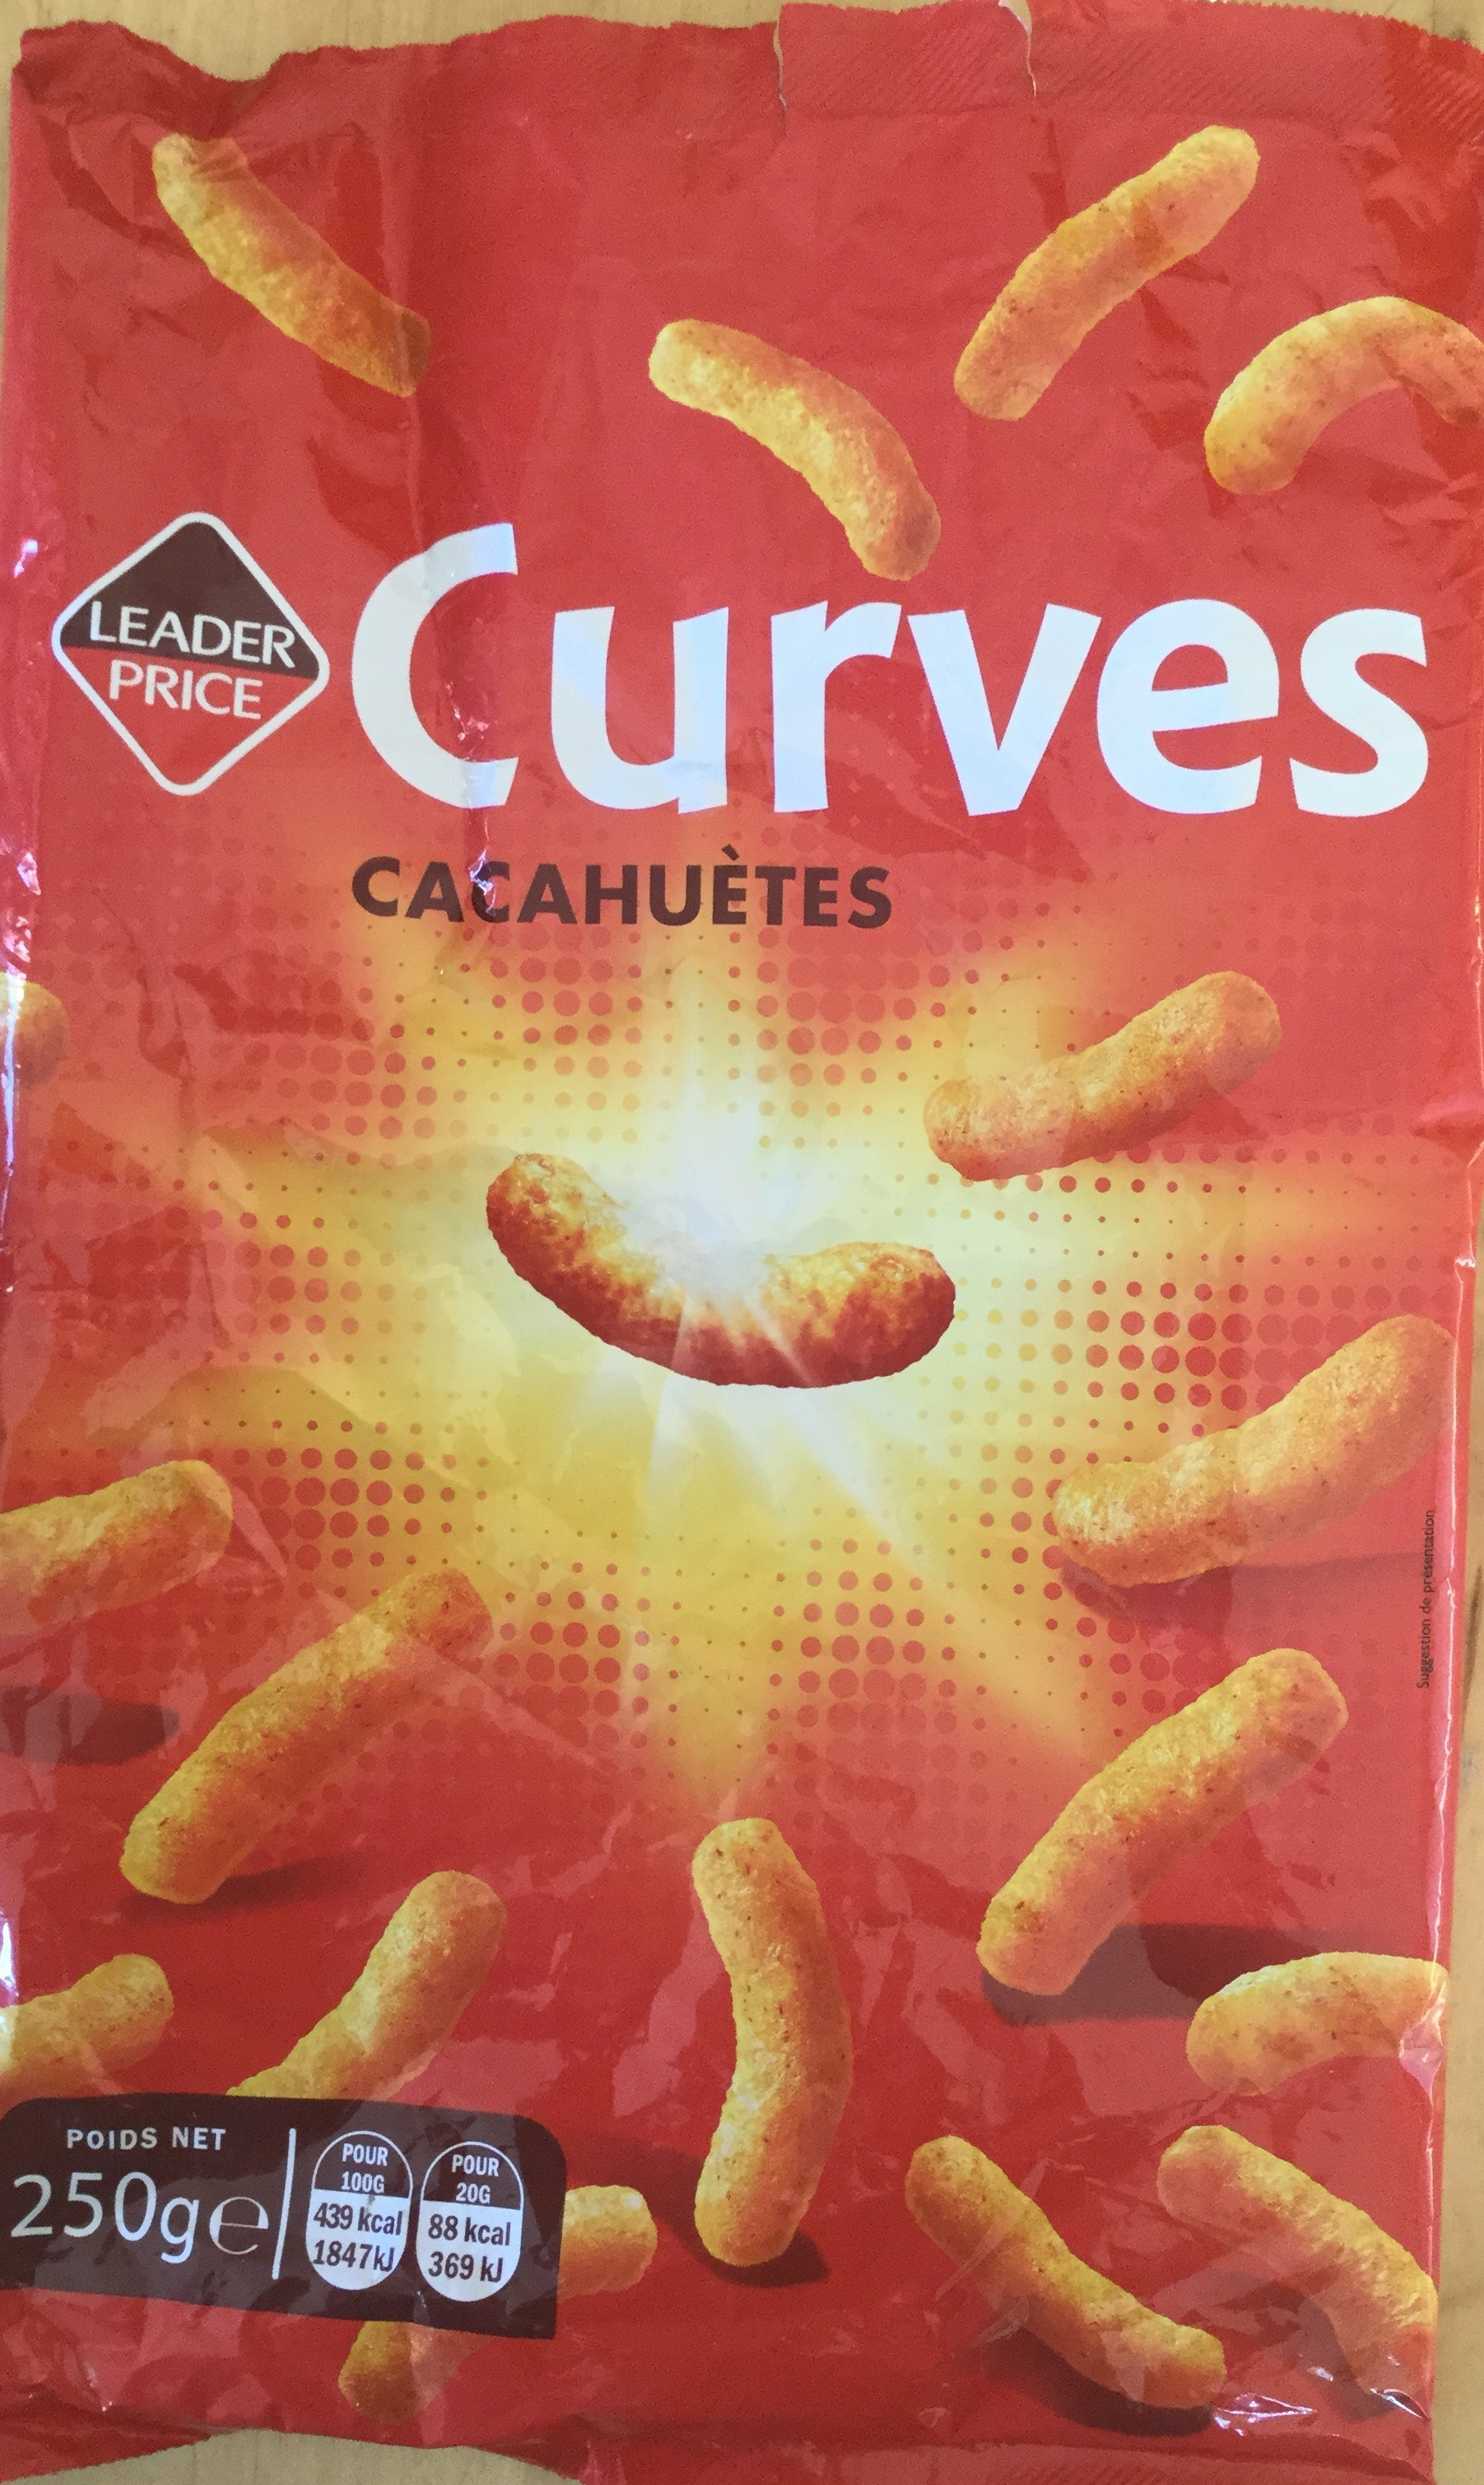 Curves cacahuètes - Producto